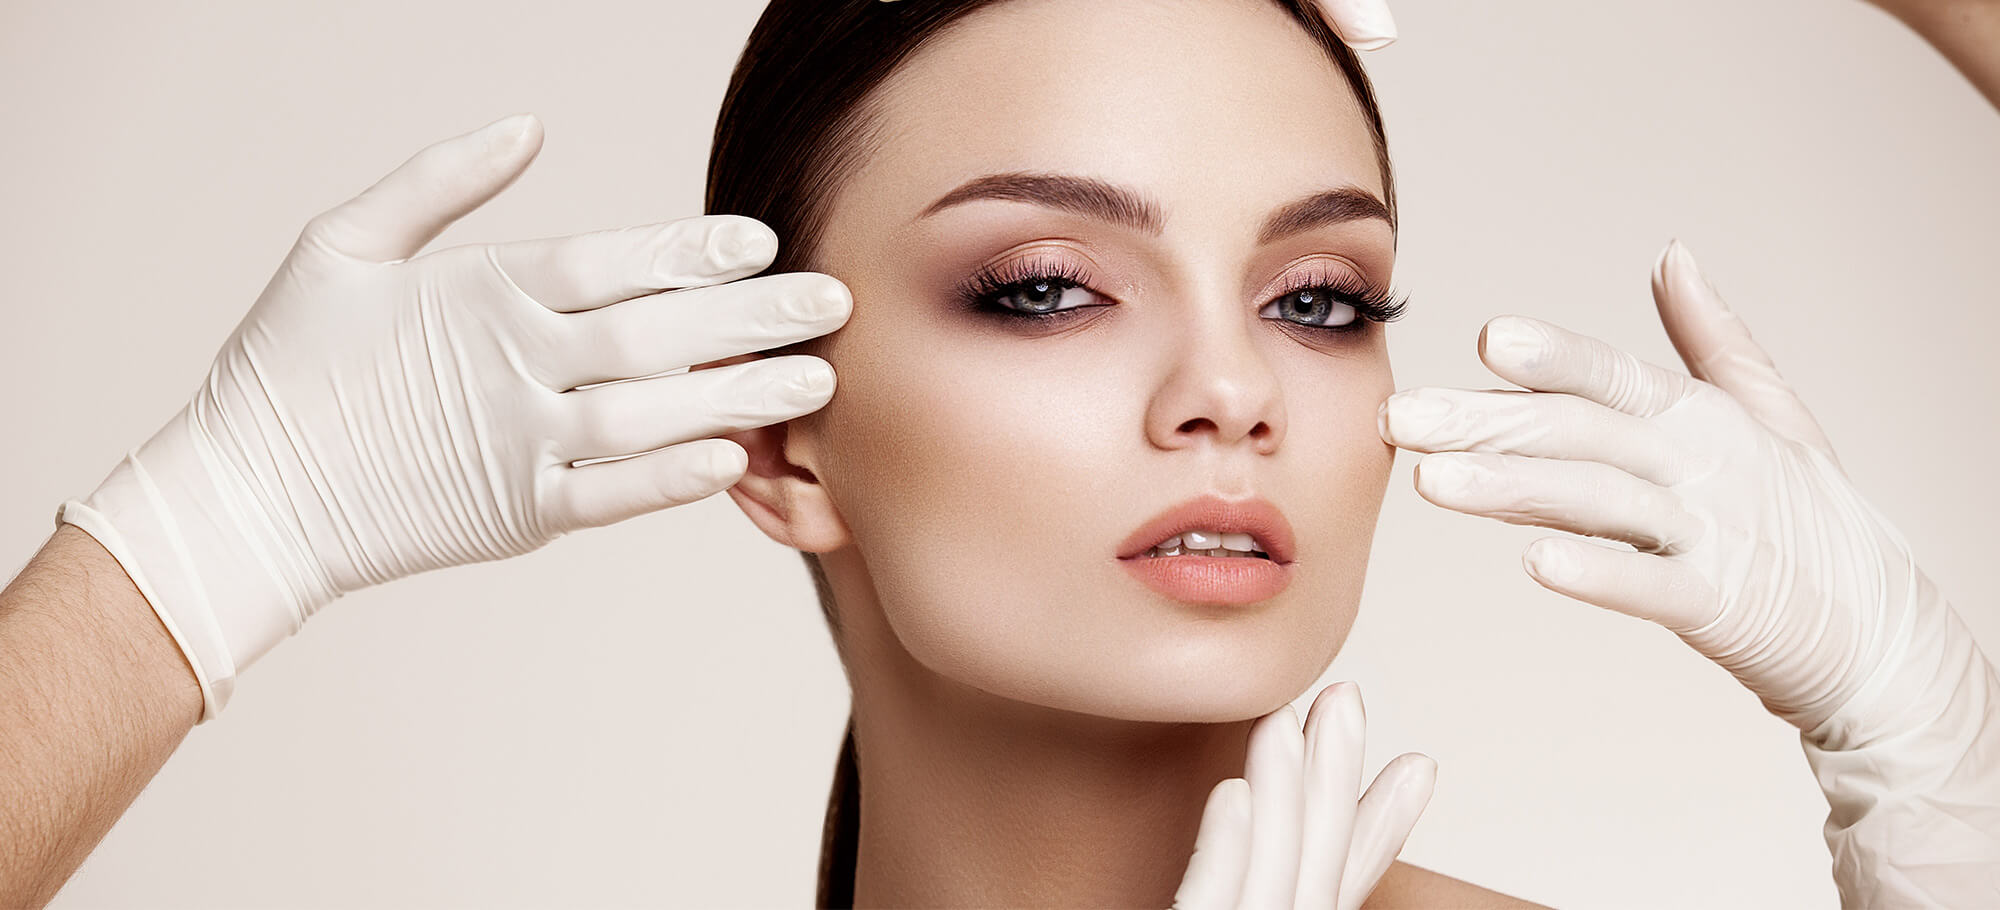 Cosmetic Plastic Surgery Centre - Banner Image